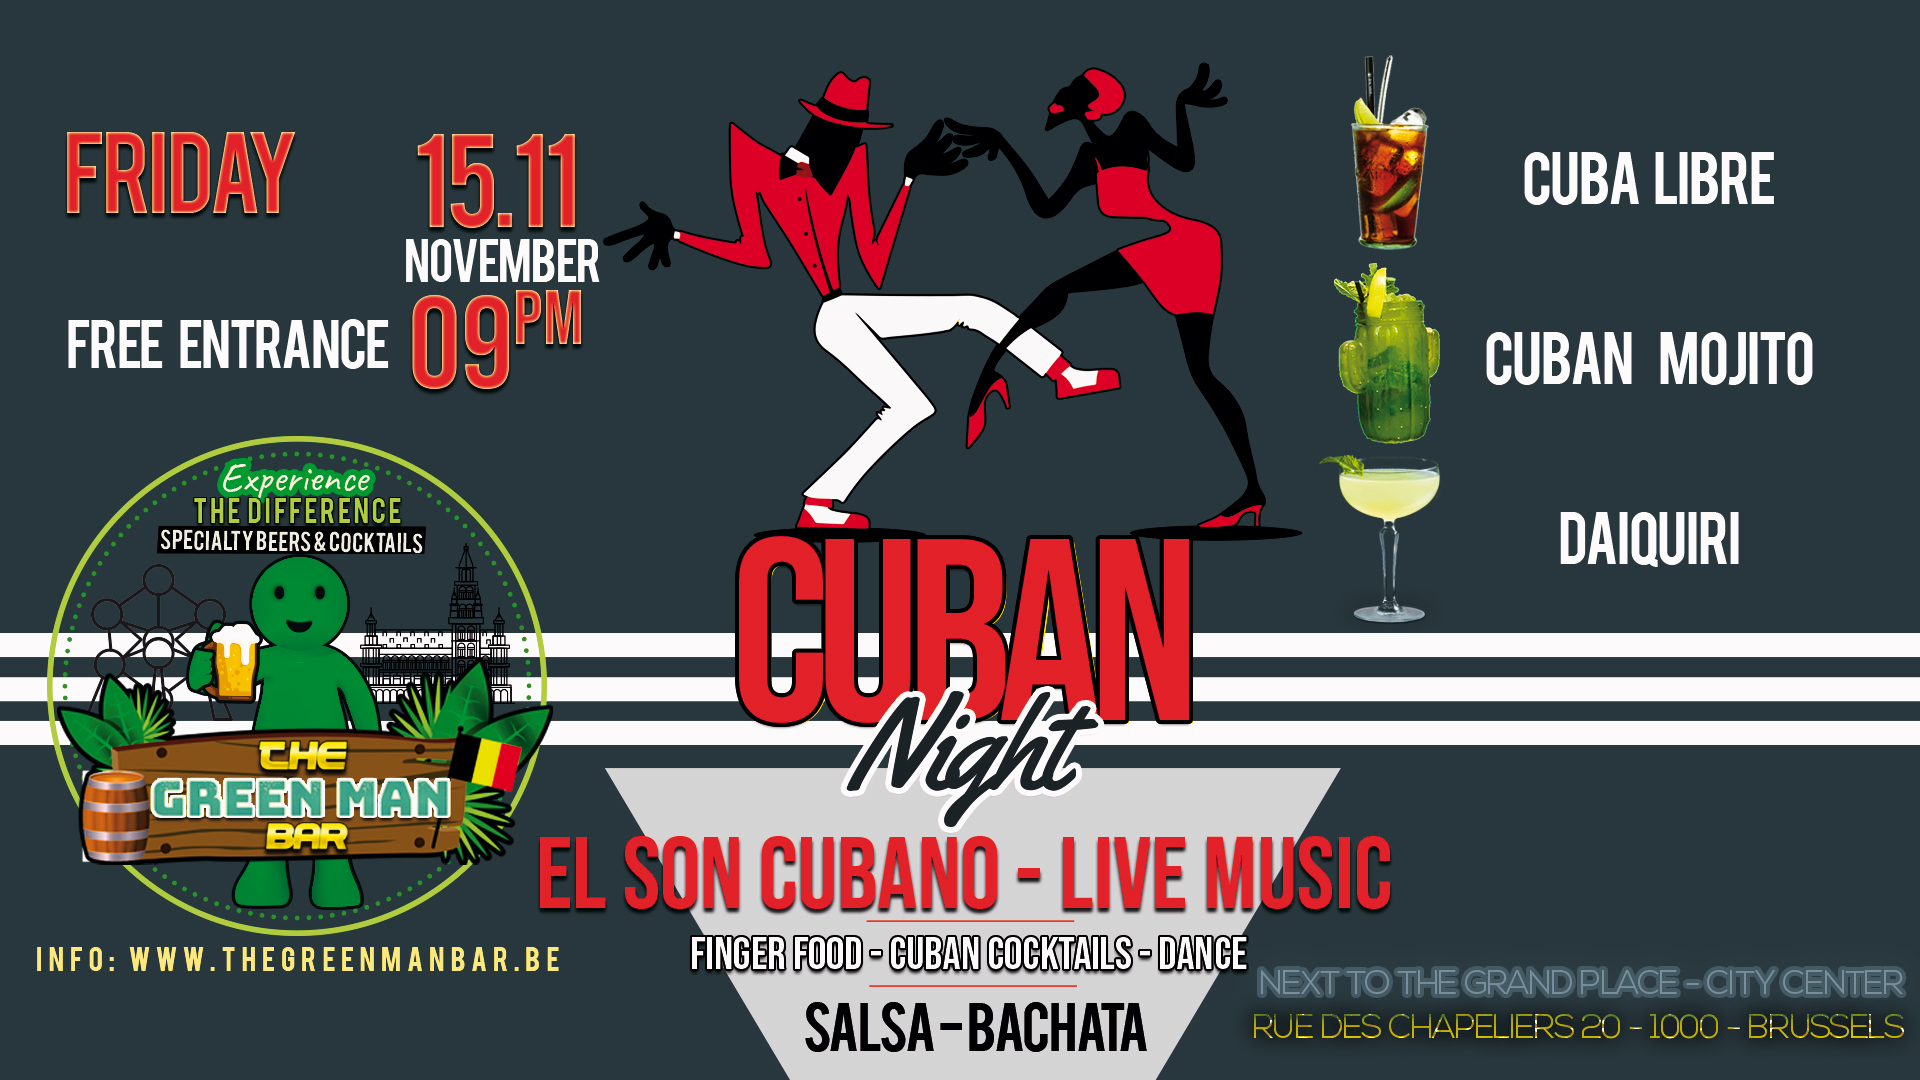 El Son Cubano – Cuban Live Music night next to the Grand Place – Friday 15th November 9PM